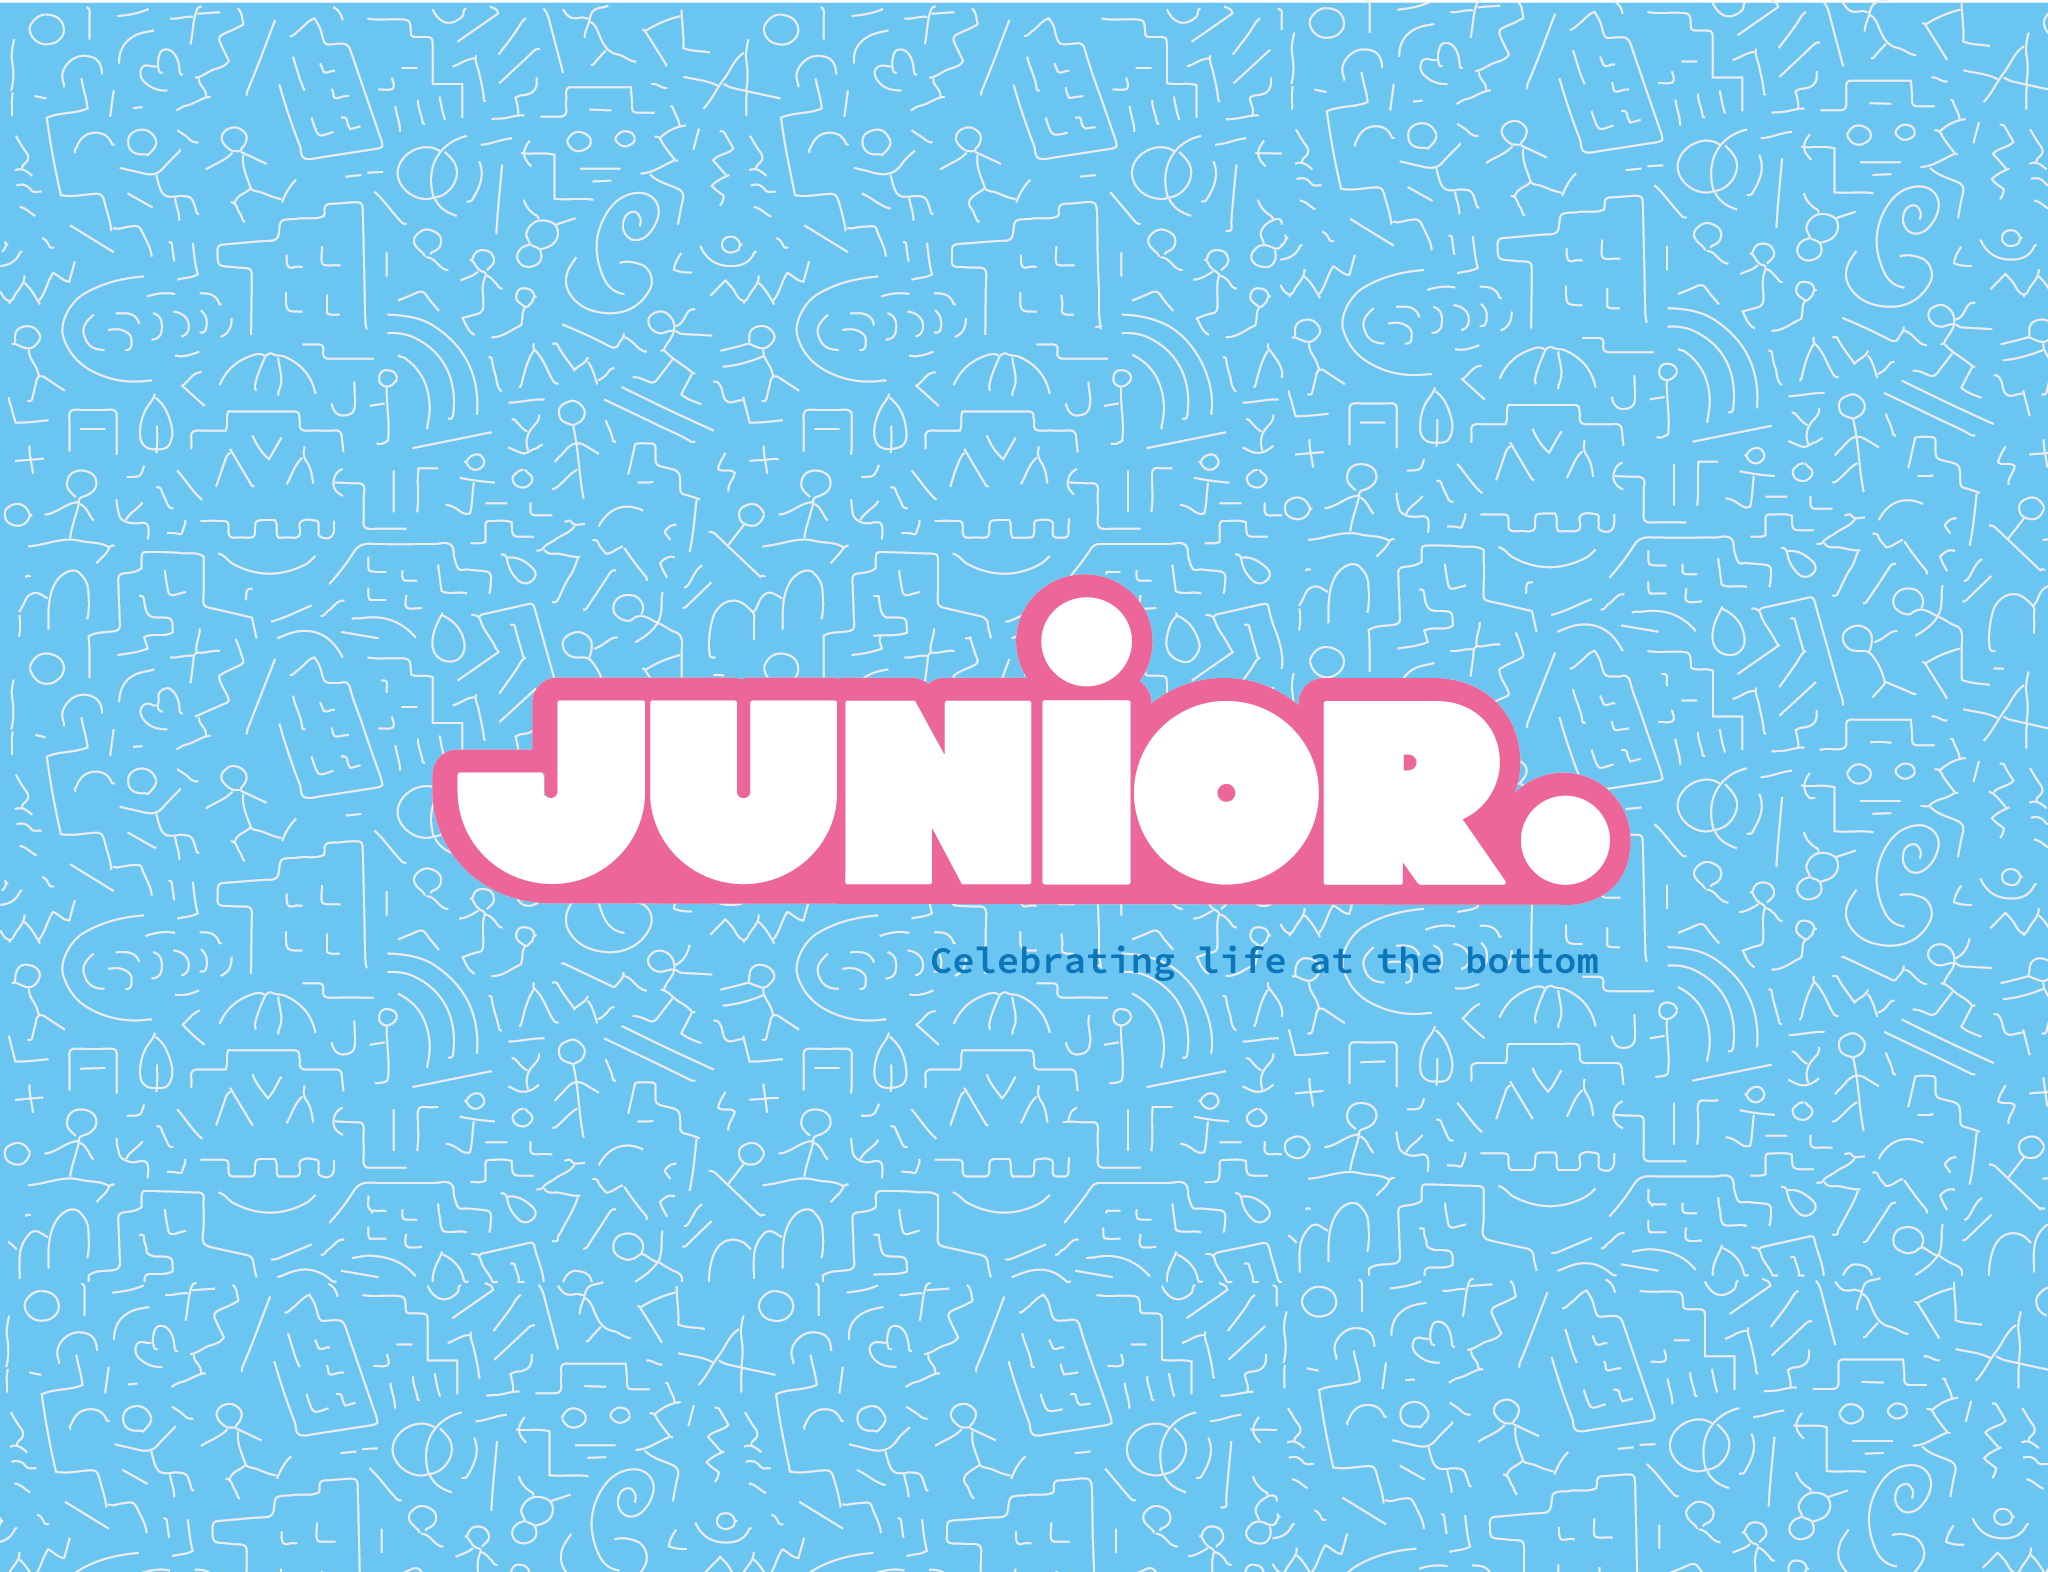 Industry podcast JUNIOR celebrates life at the bottom once again with a relaunch